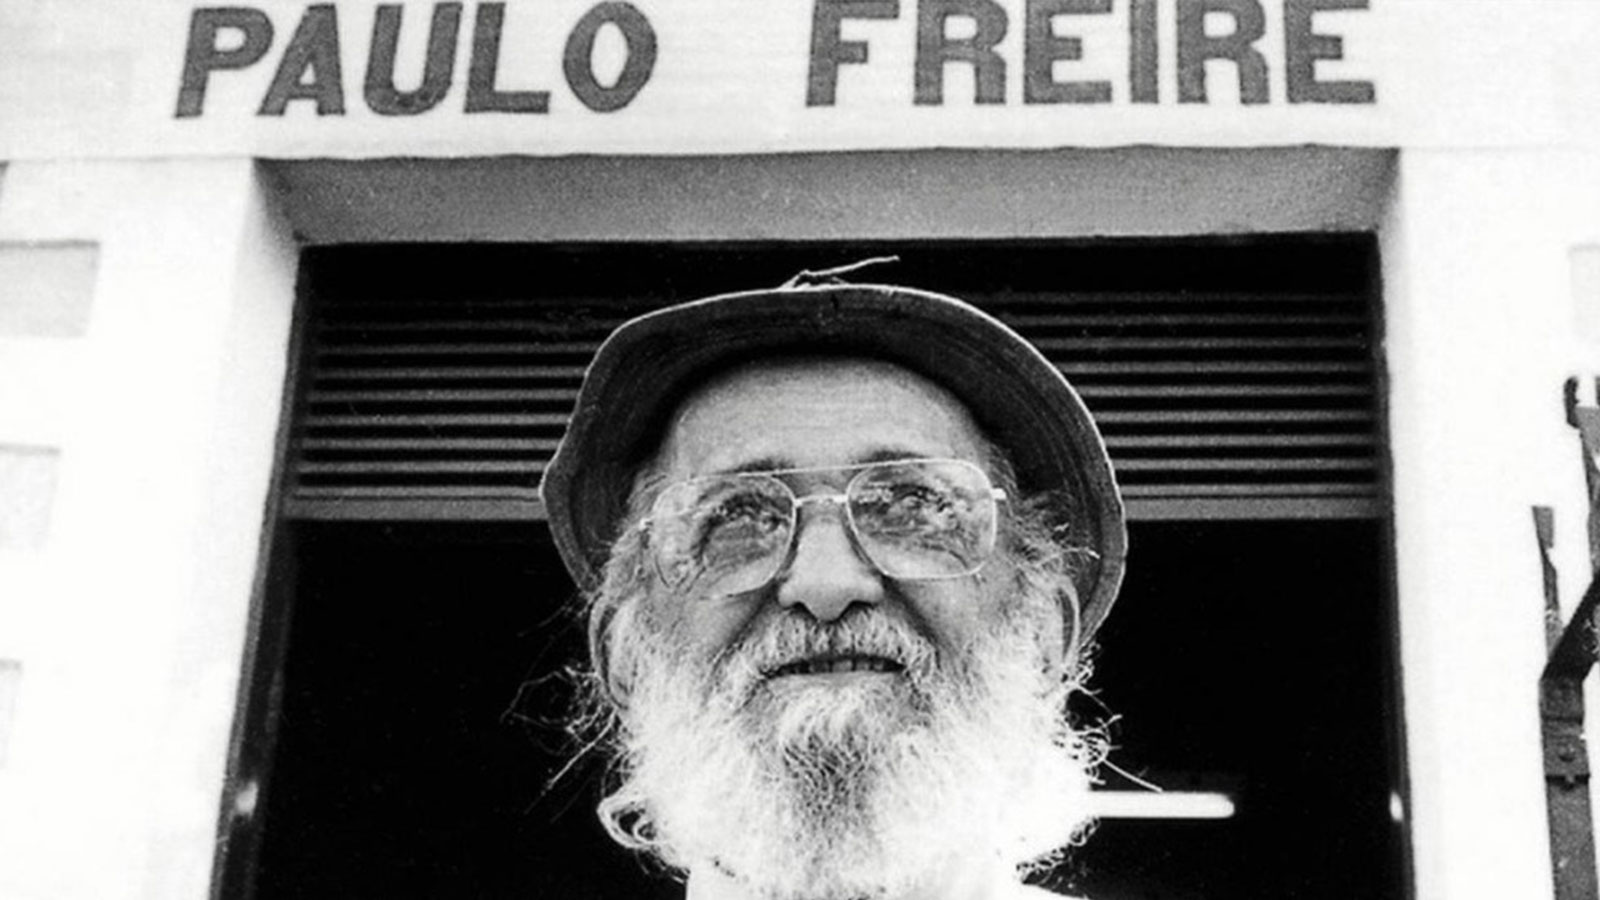 Paulo Freire wearing hat and glasses with an amazing big white beard.